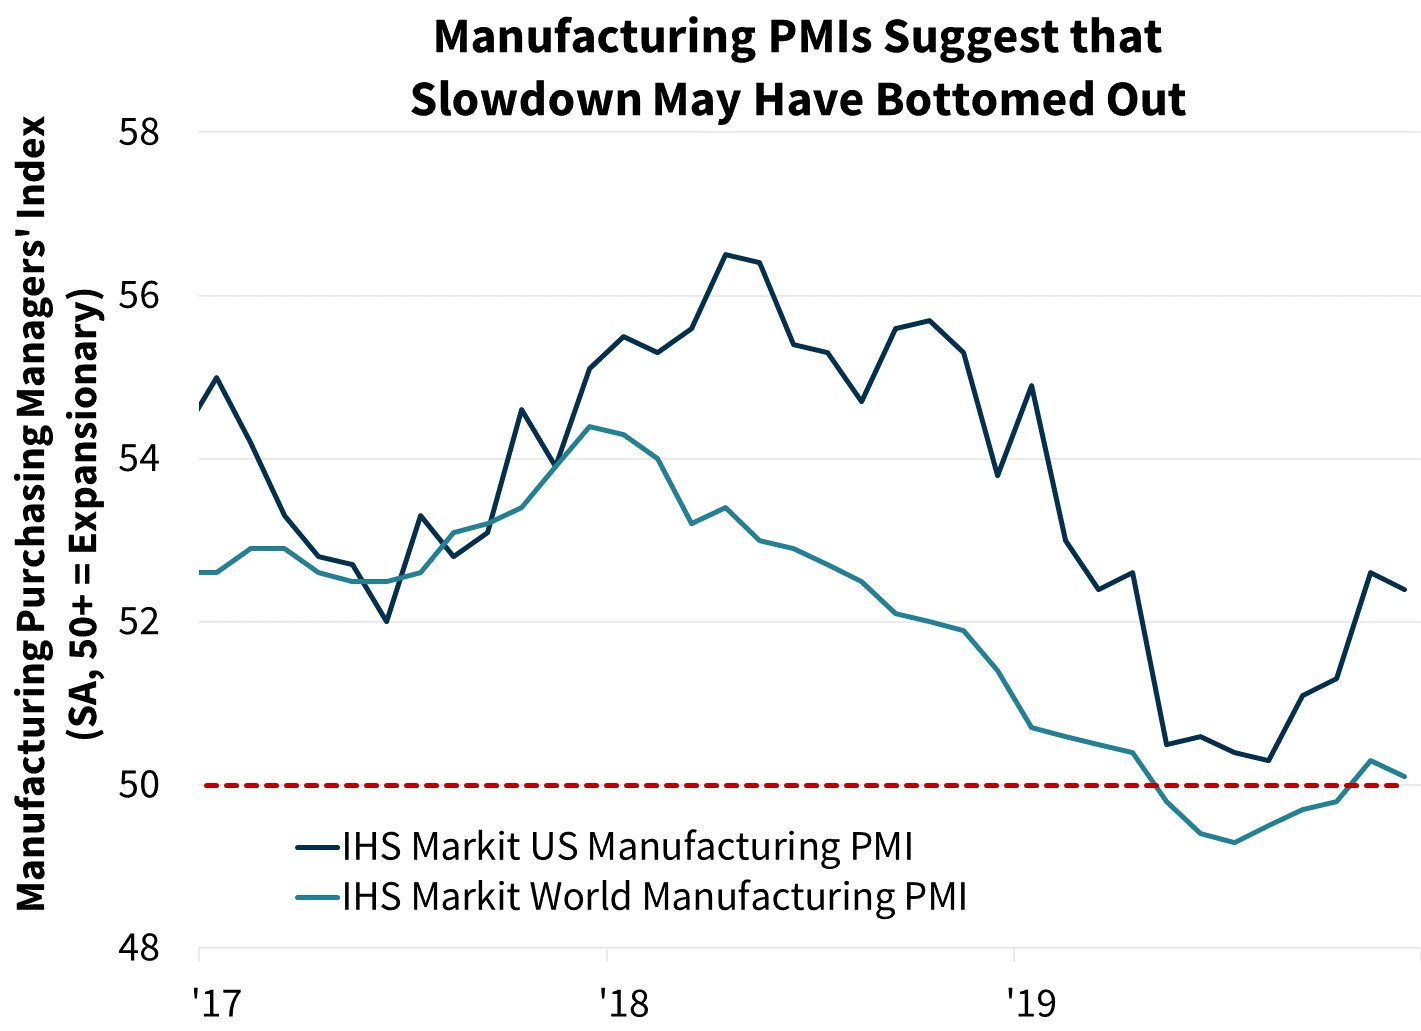 Manufacturing PMIs Suggest that Slown May Have Bottomed Out